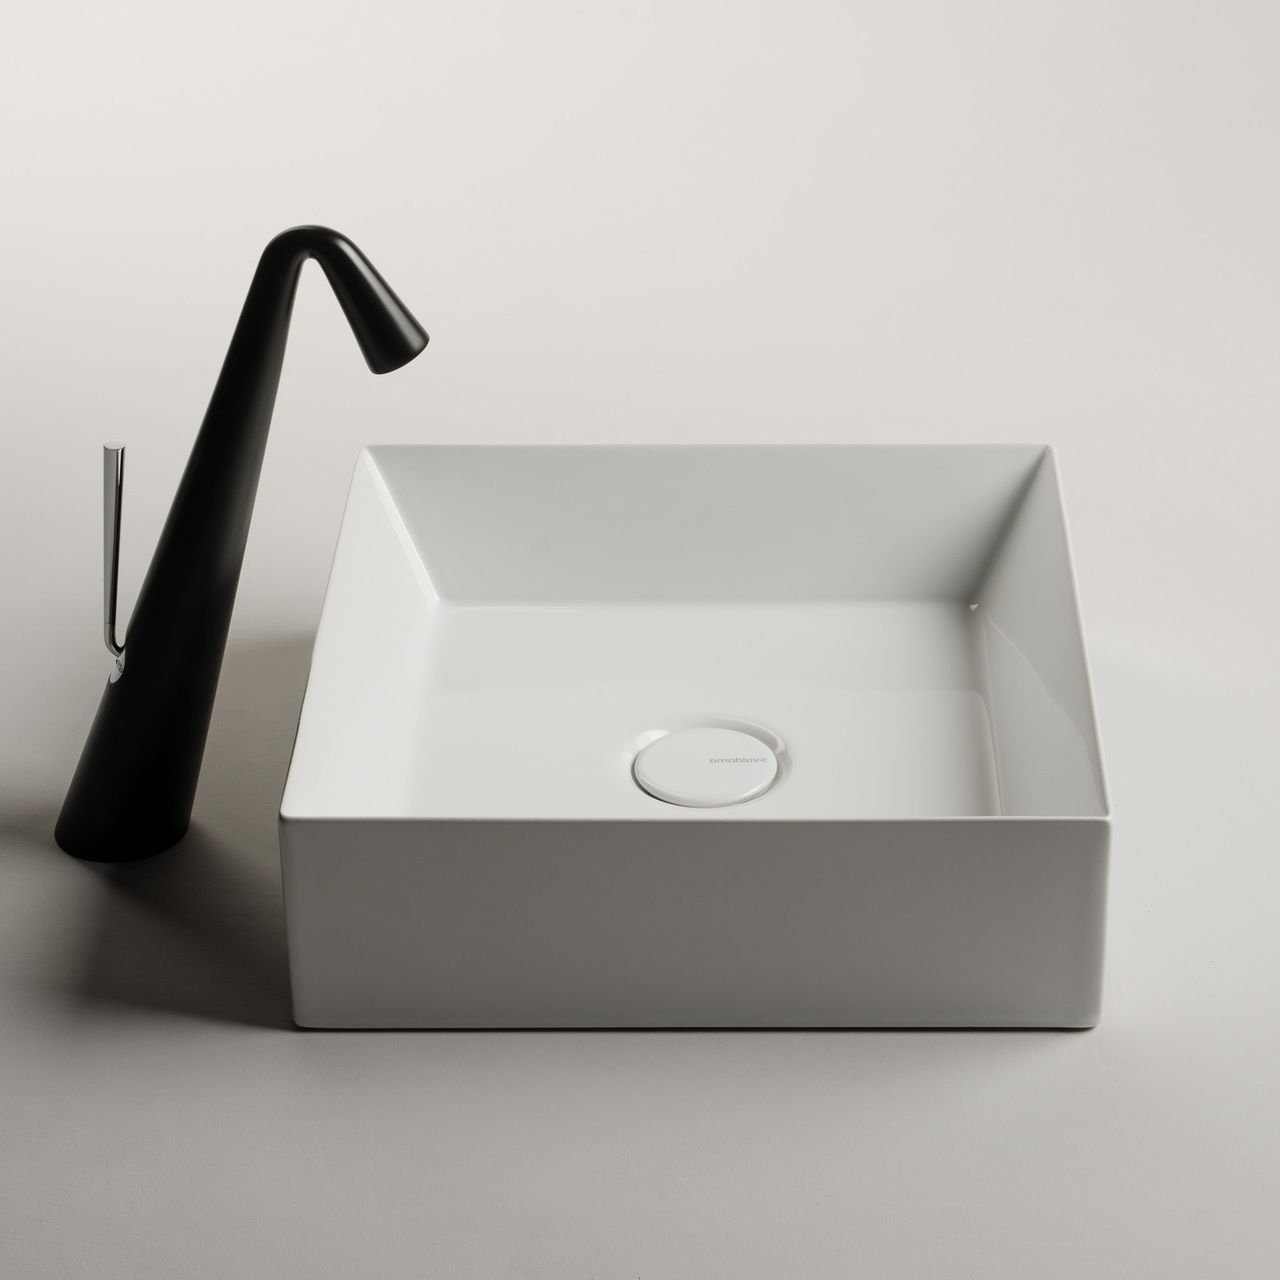 Luxury Design - Sink